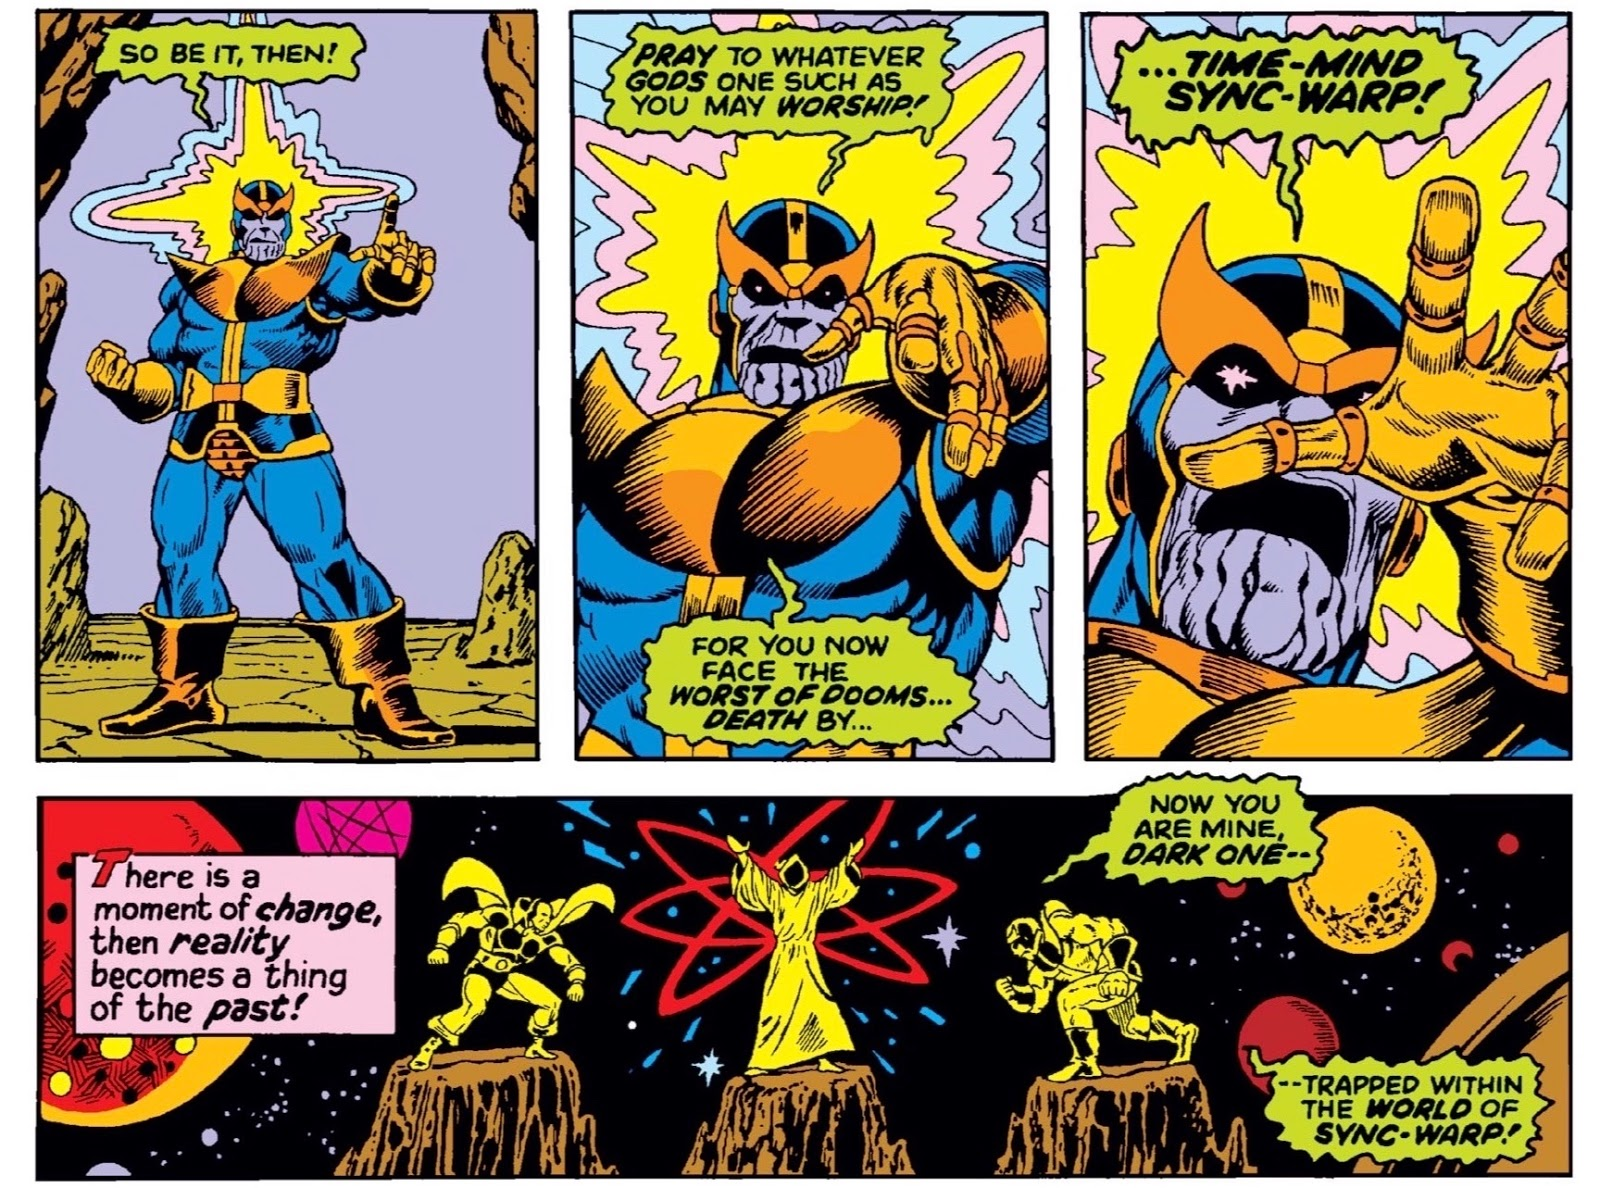 Panels of 'camera' moving in on Thanos as he boasts to Drax, announcing 'the worst of dooms… Death by Time-Mind Sync-Warp!' then sudden transportation to eerie landscape